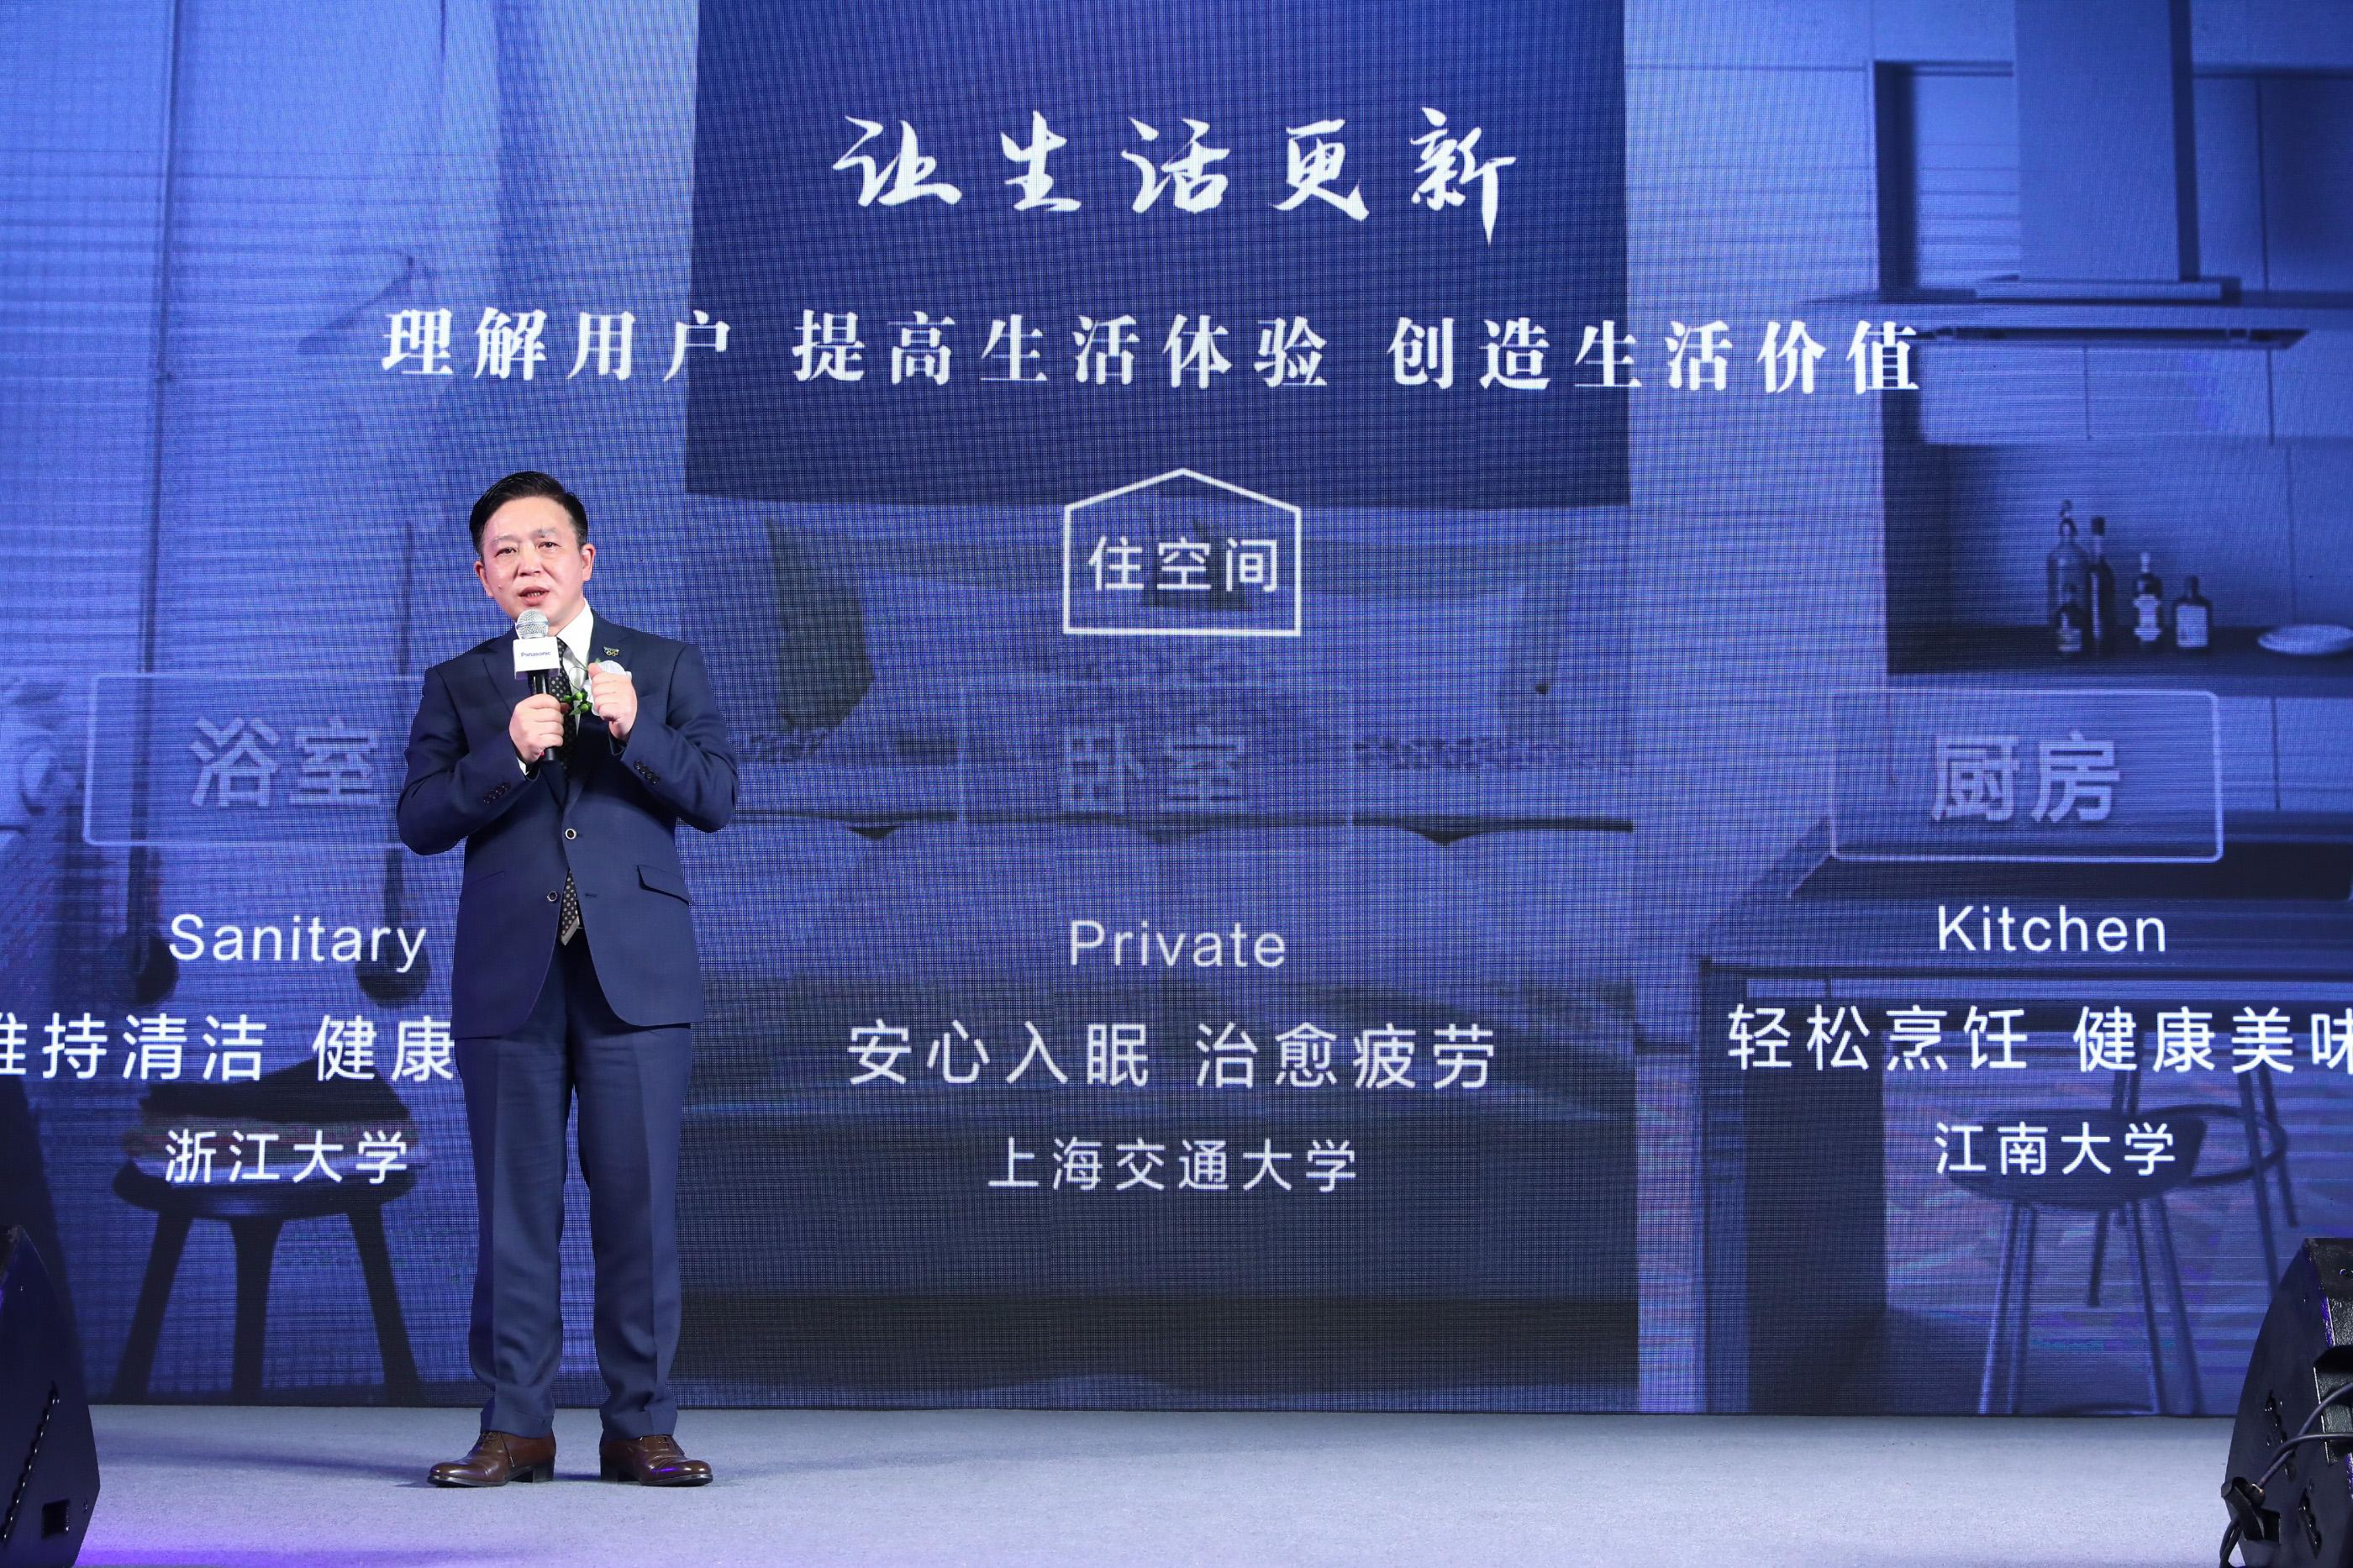 photo: Liang Wu, Managing Director of Panasonic Appliances (China) Co., Ltd